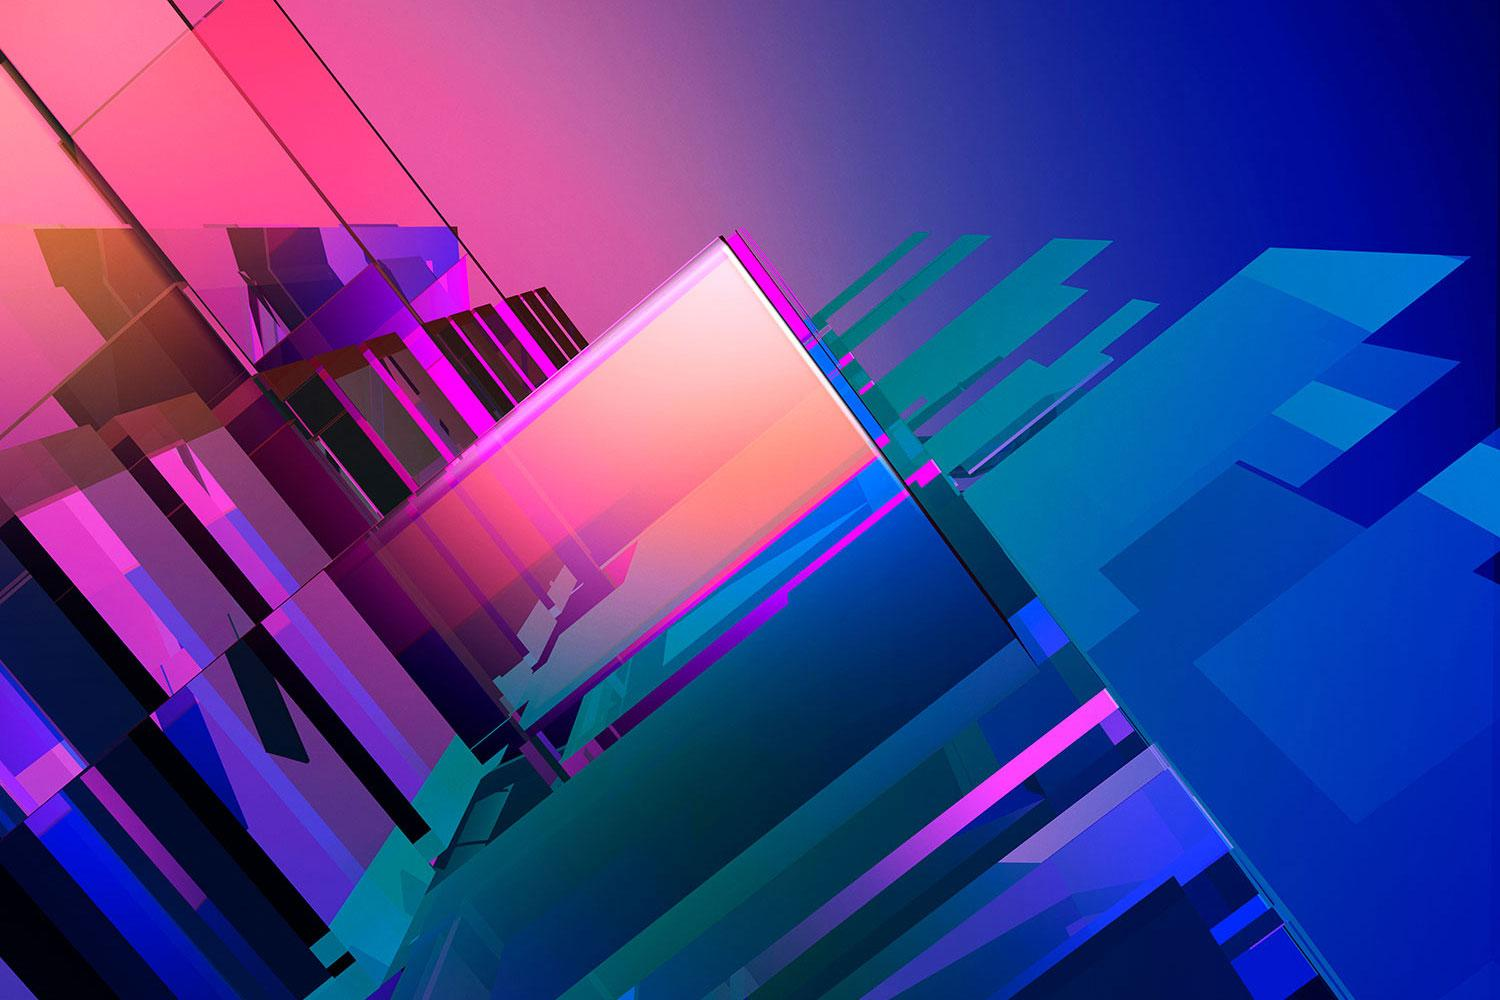 Abstract pink to blue squares